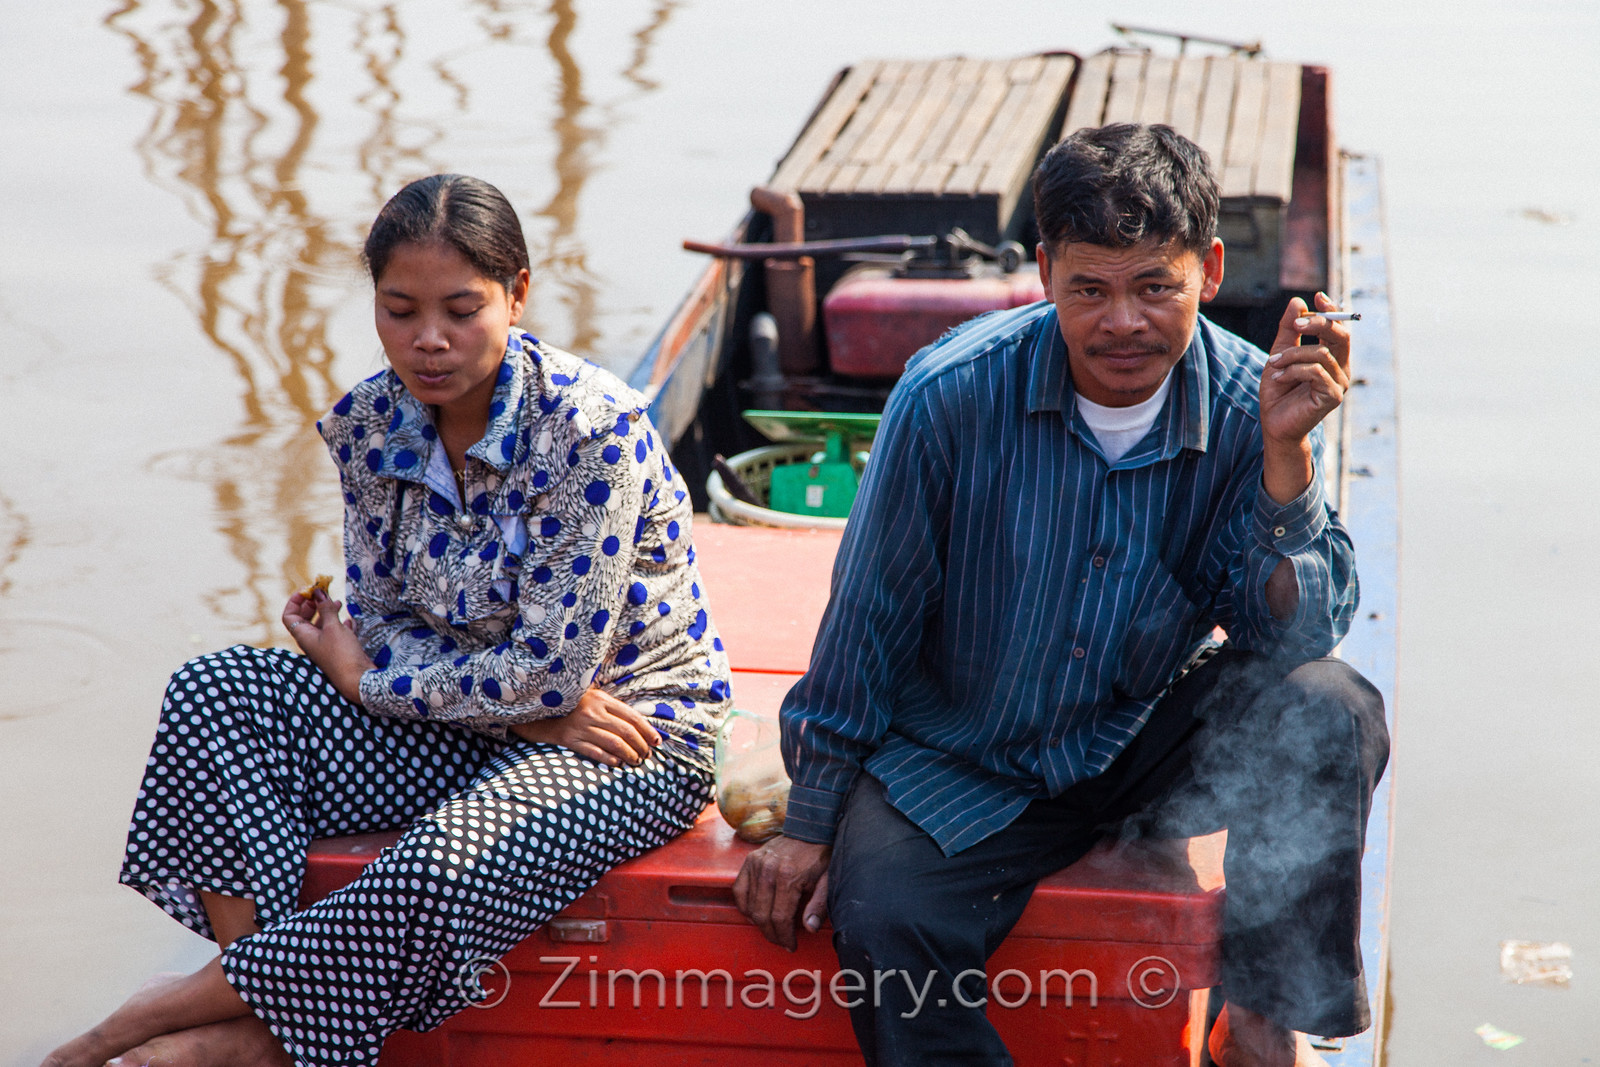 Fisherman and Wife, Floating City, Cambodia